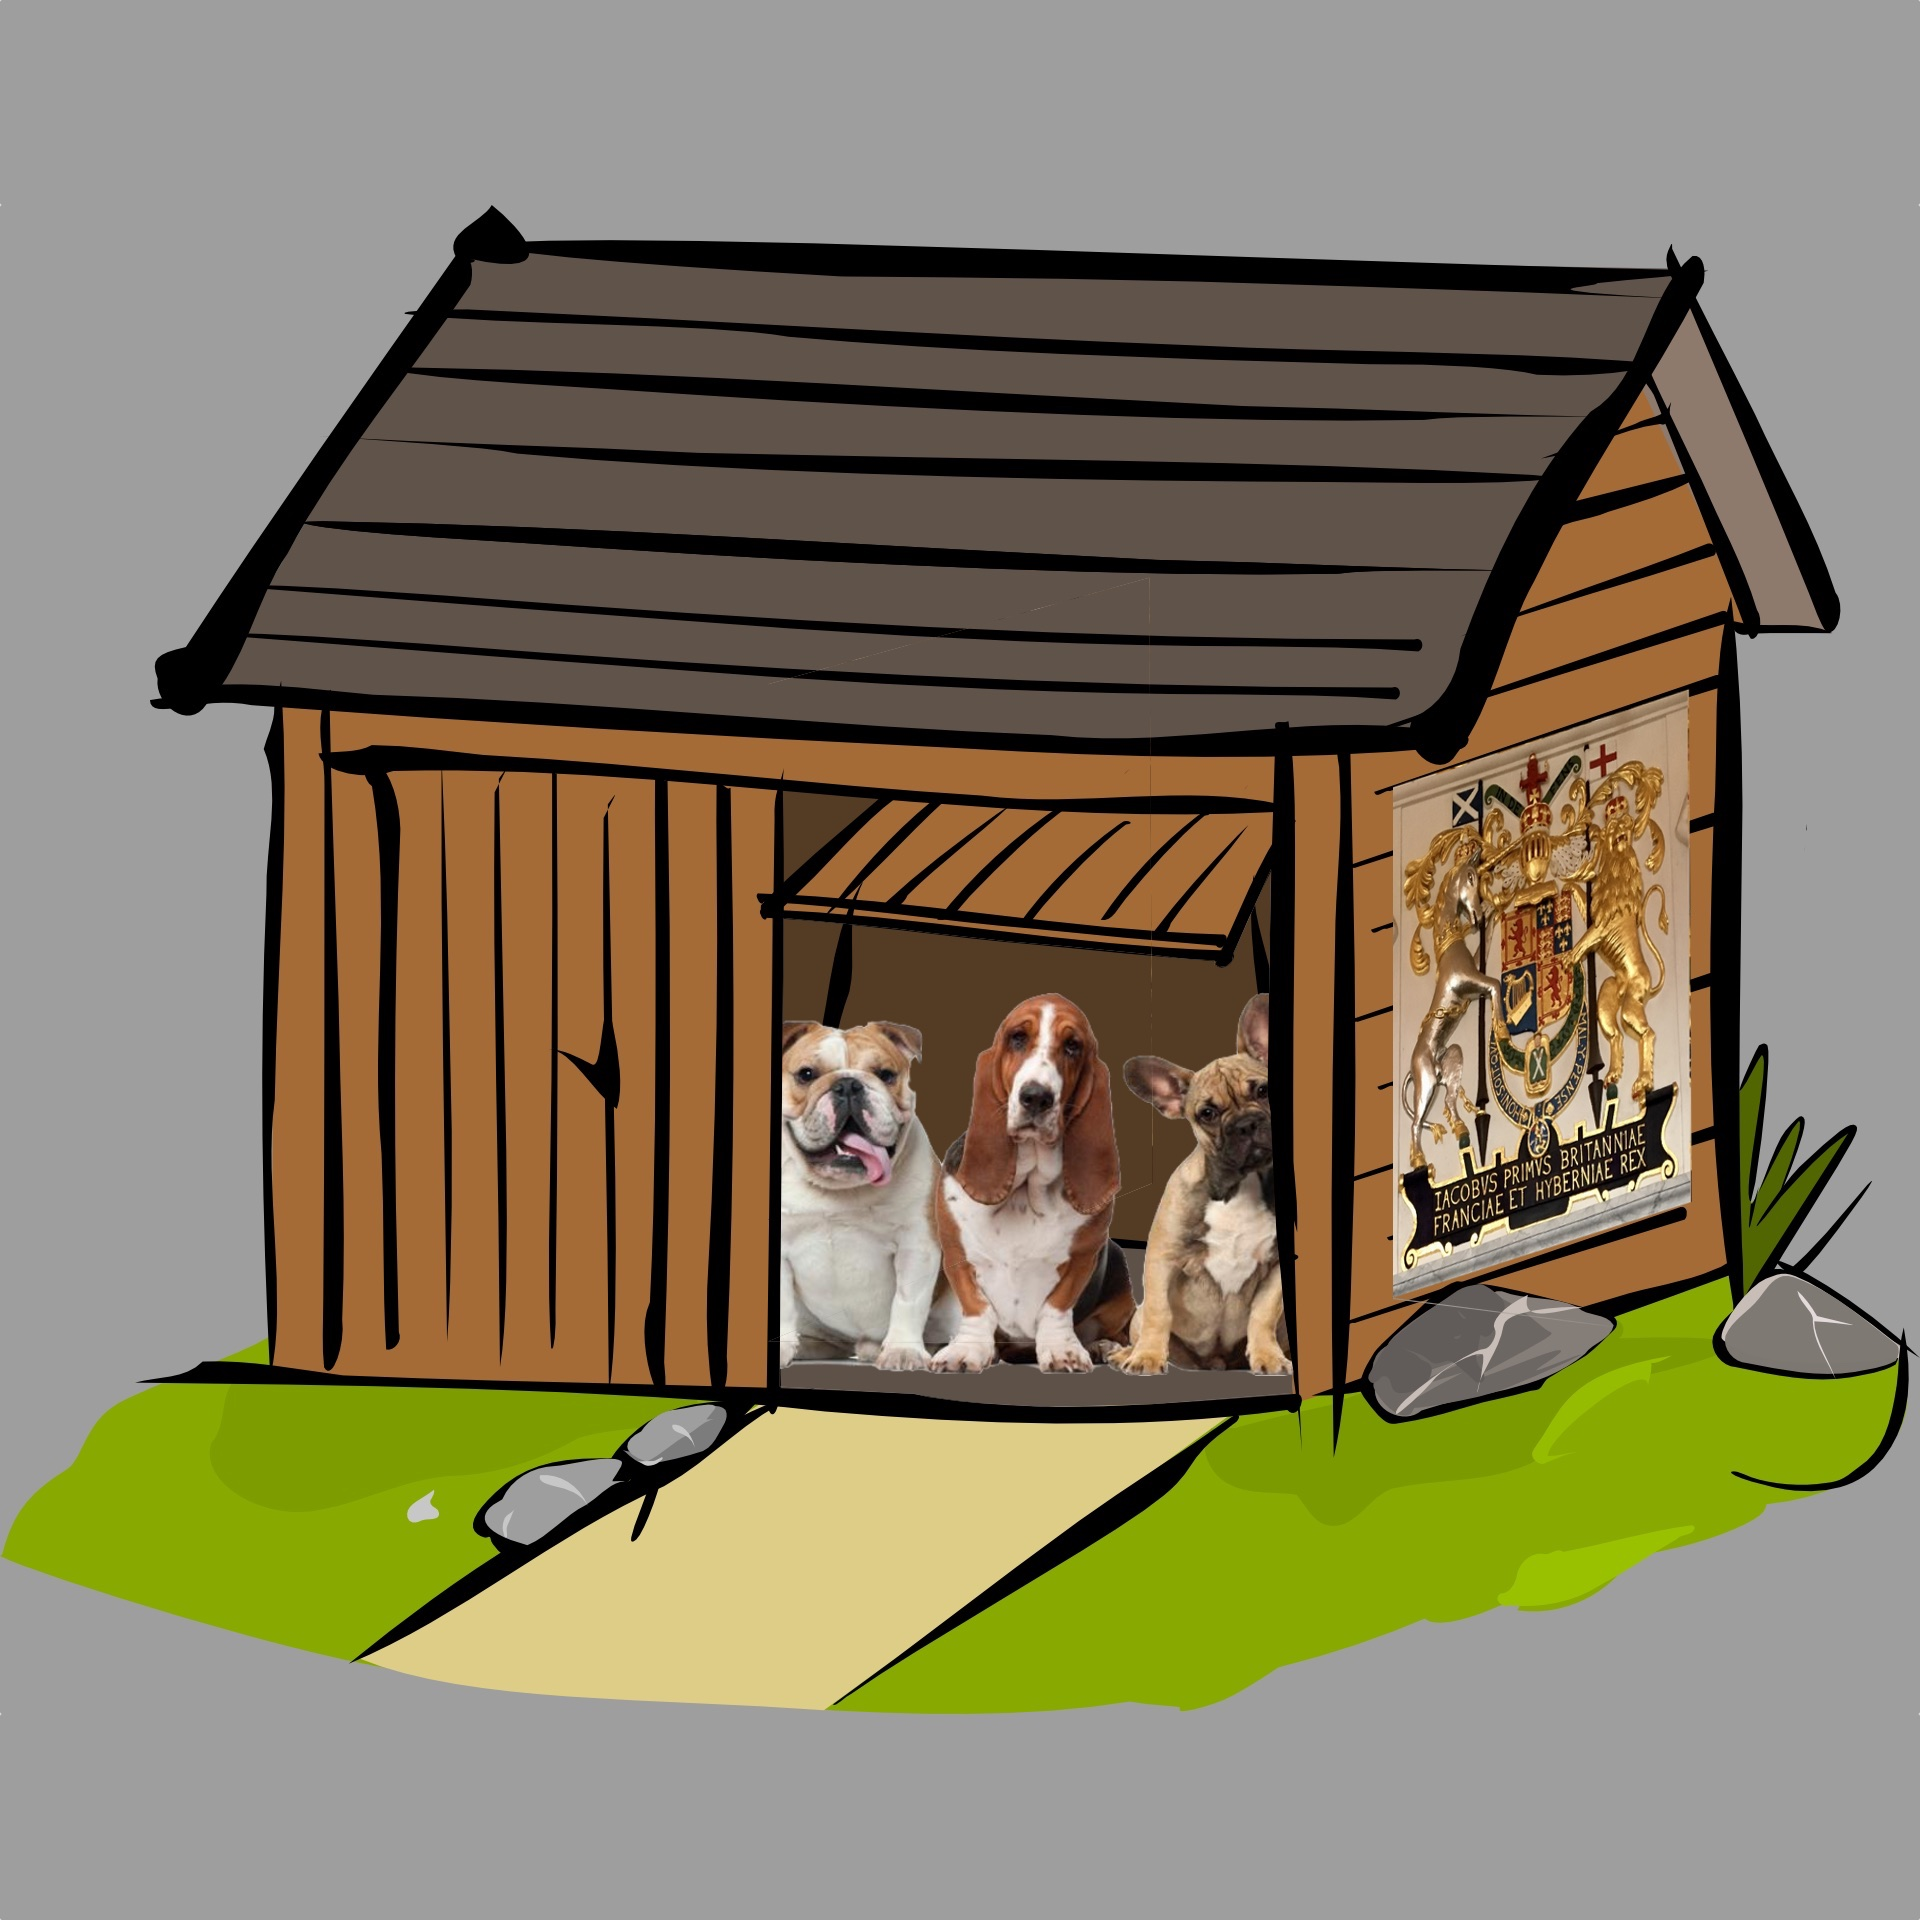 Dogs in Shed with coat of arms.jpg